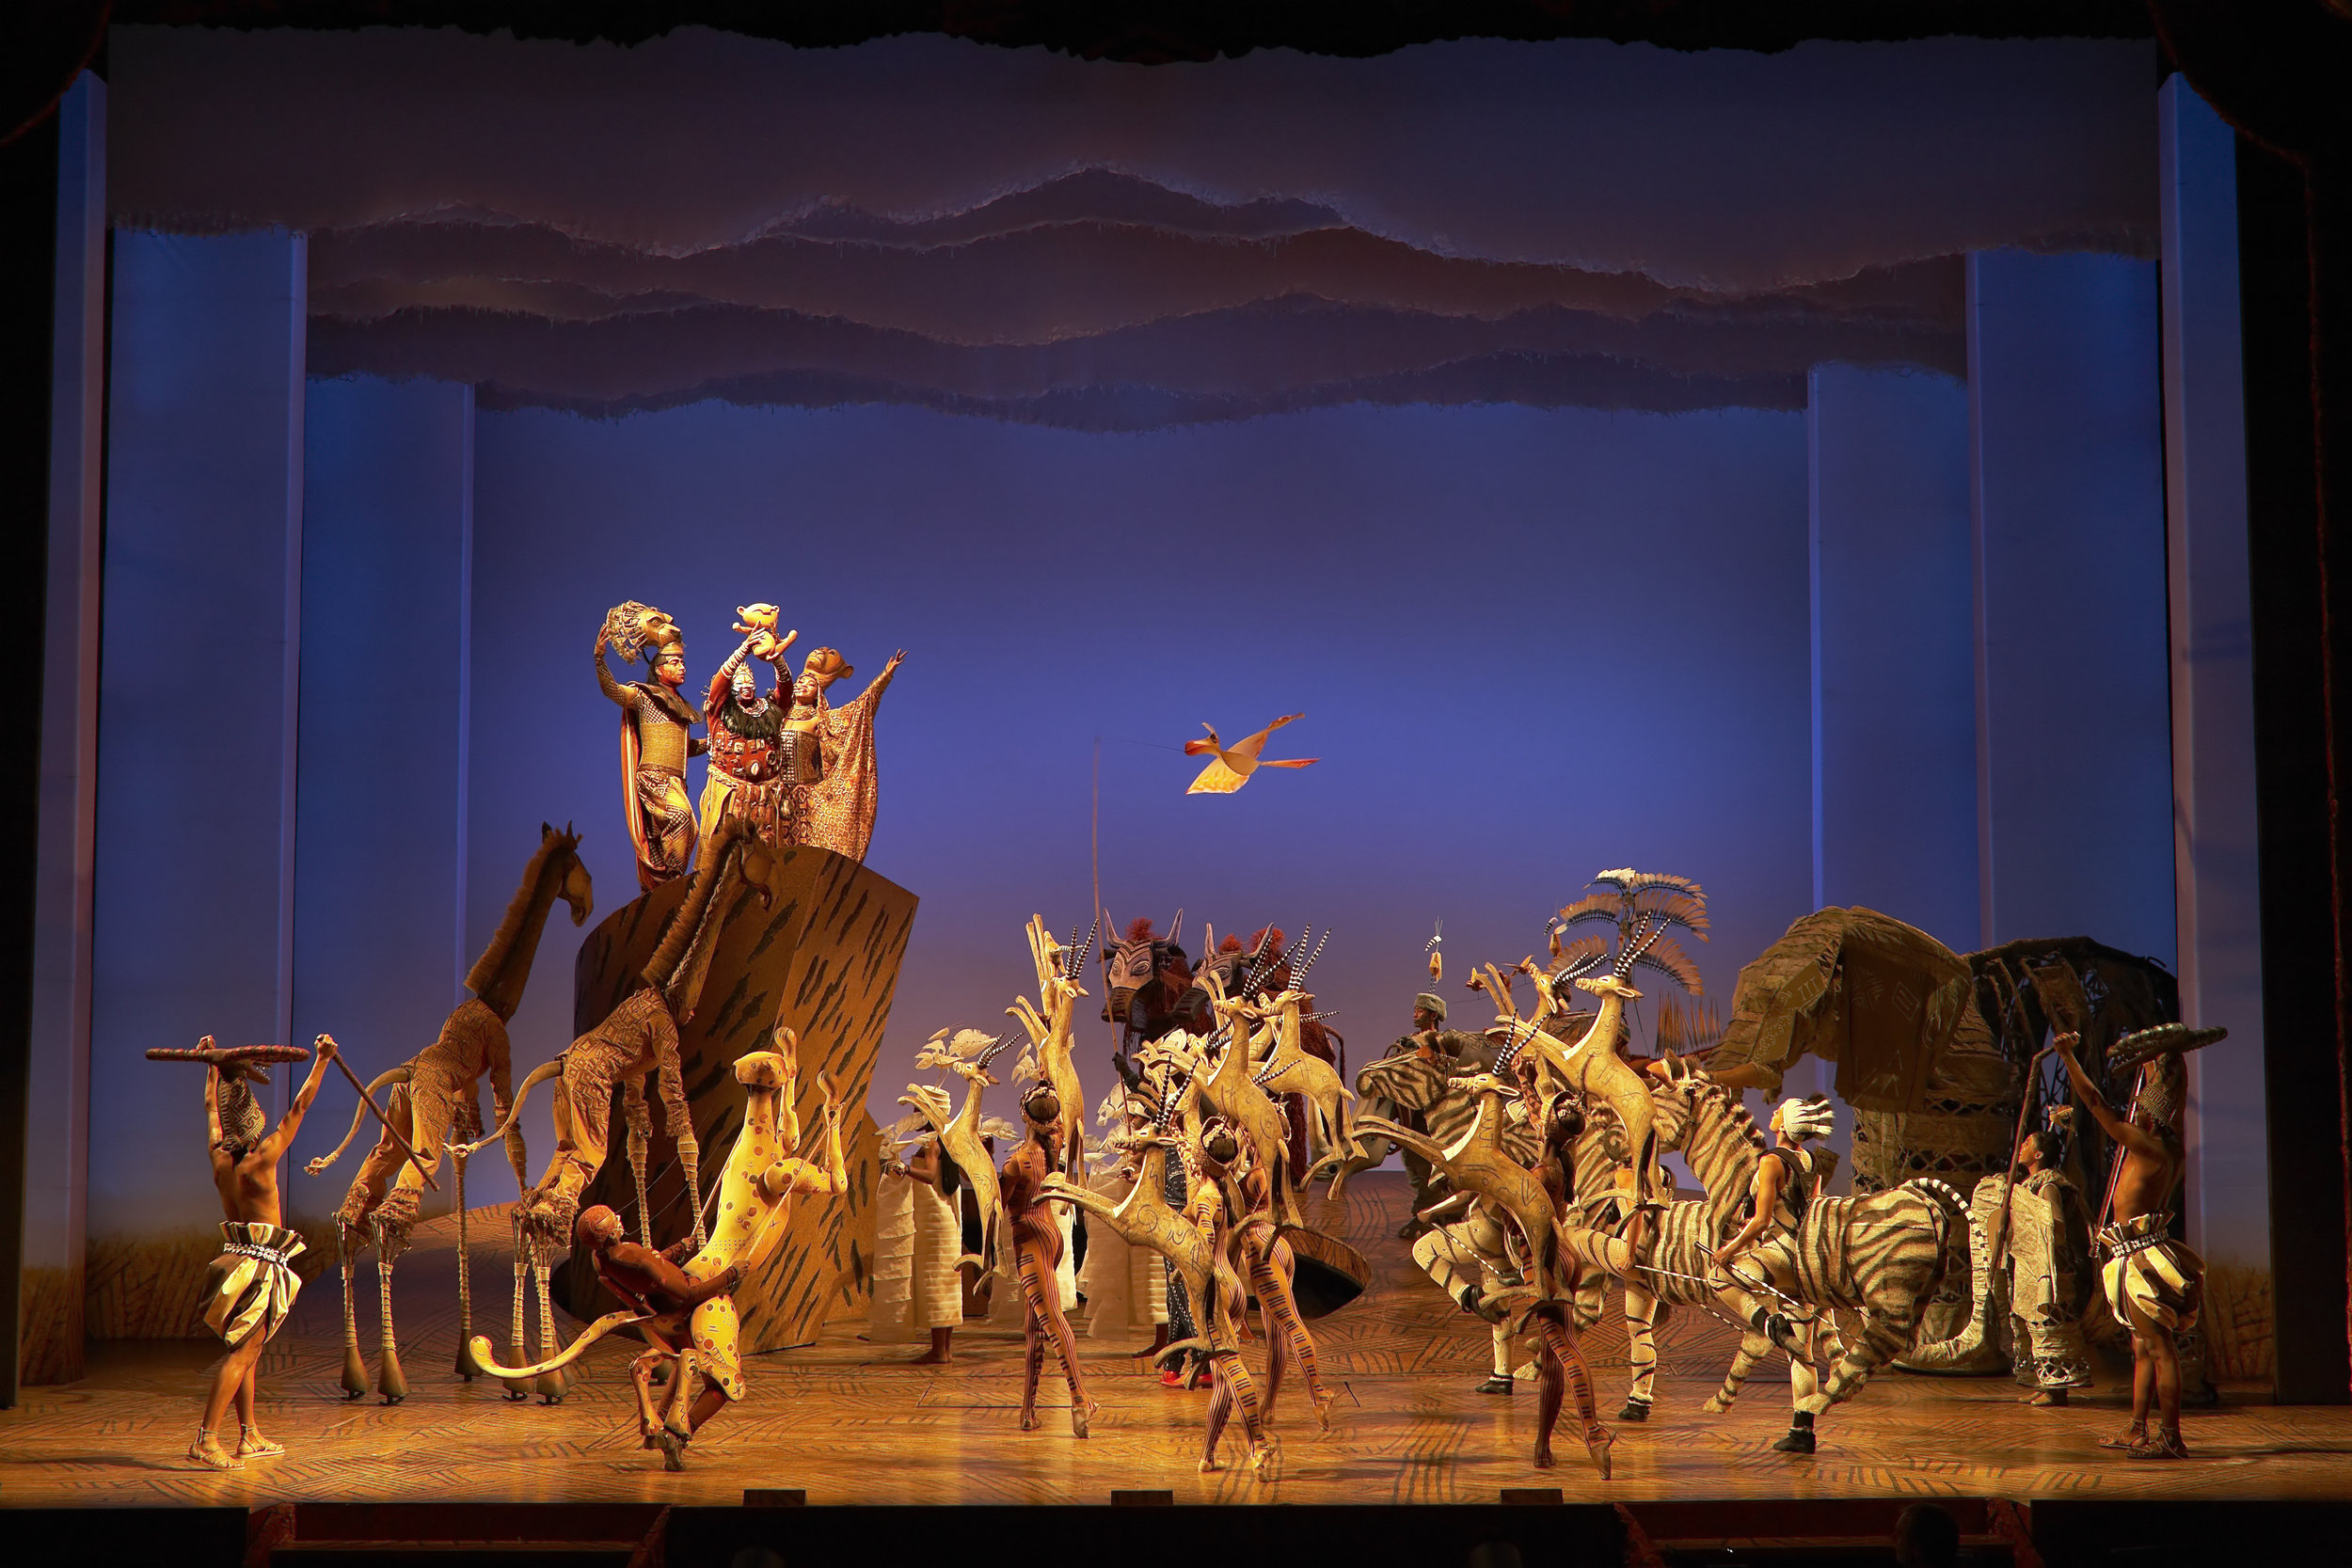 The Lion King - Scene of the Circle of Life summoning the animals of the Pride Lands for the presentation of baby Simba.